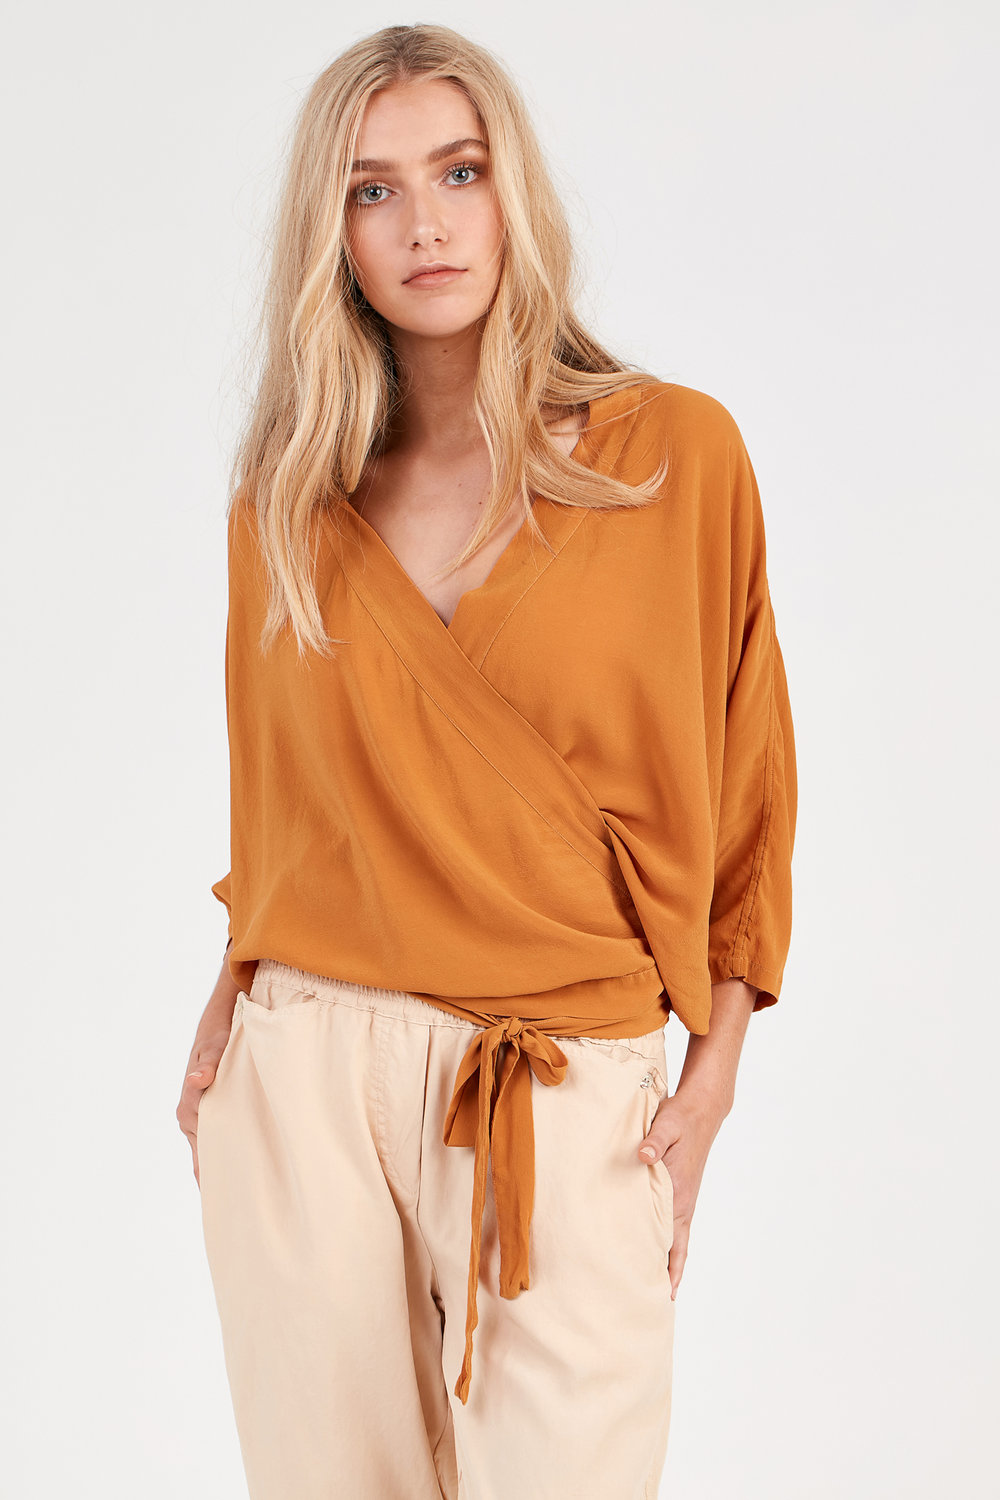 FLUTED TOP RUST. KUL PANT FAWN